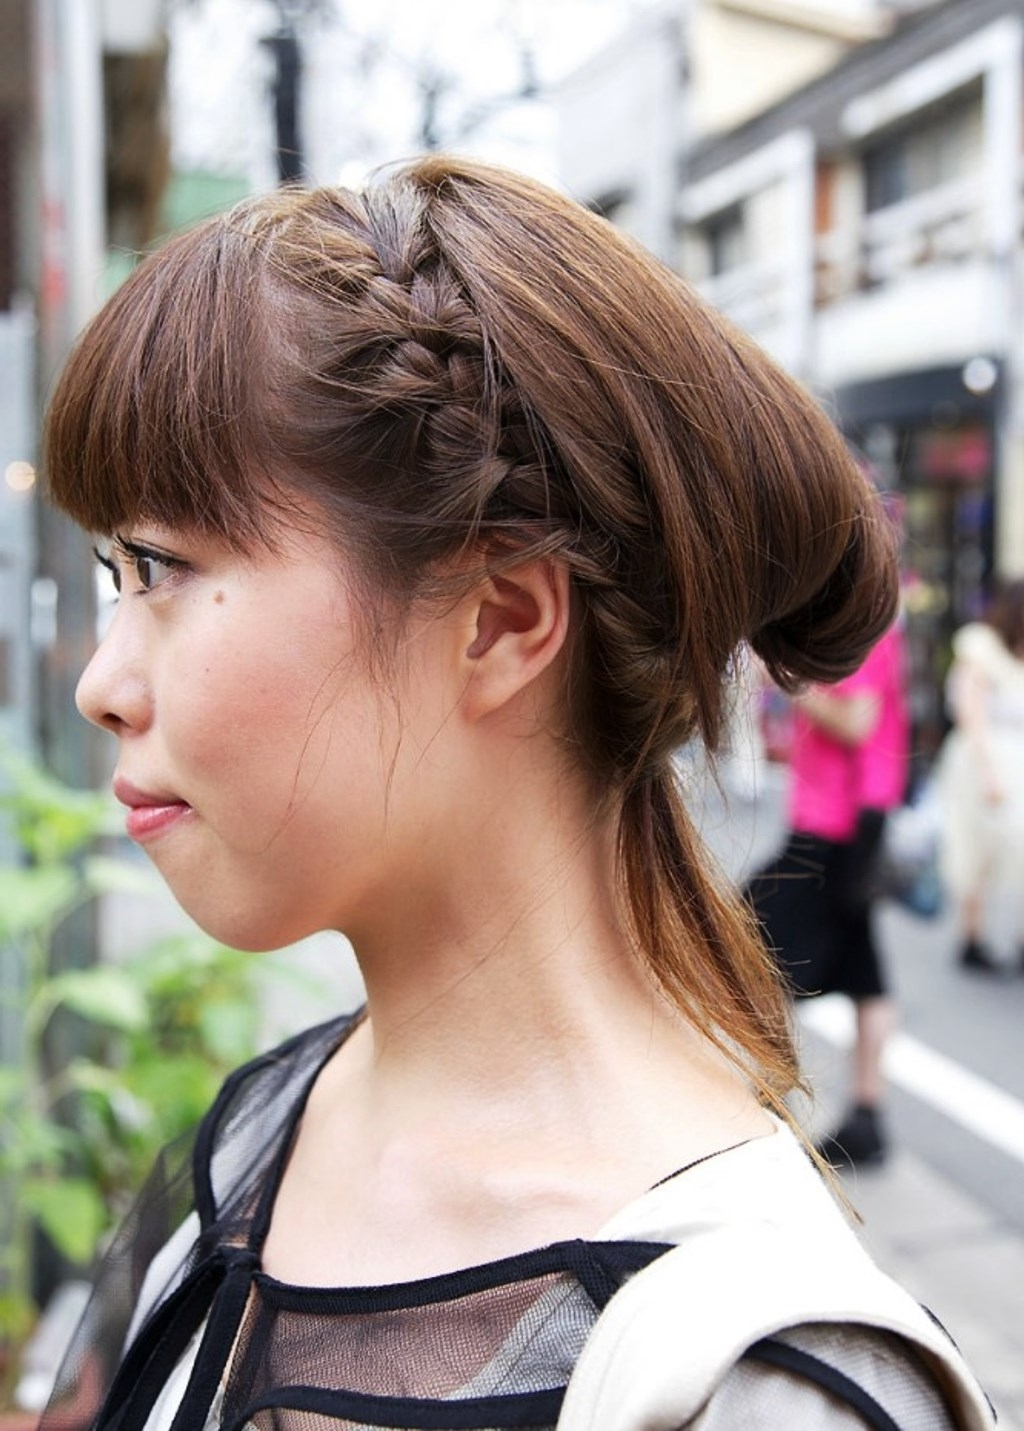 Pictures Of Japanese Girls Braided Hairstyle Intended For 2017 Japanese Braided Hairstyles (View 12 of 15)